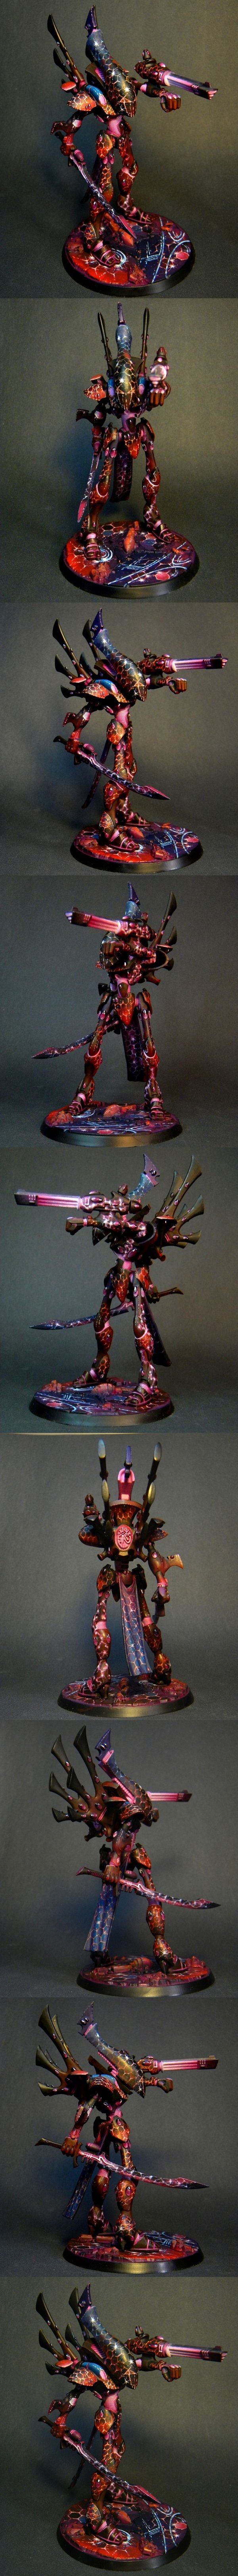 Warhammer 40k Eldar Wraithlord. He real gold here is the enormously intricate paint job and the play of lighting across the entire model